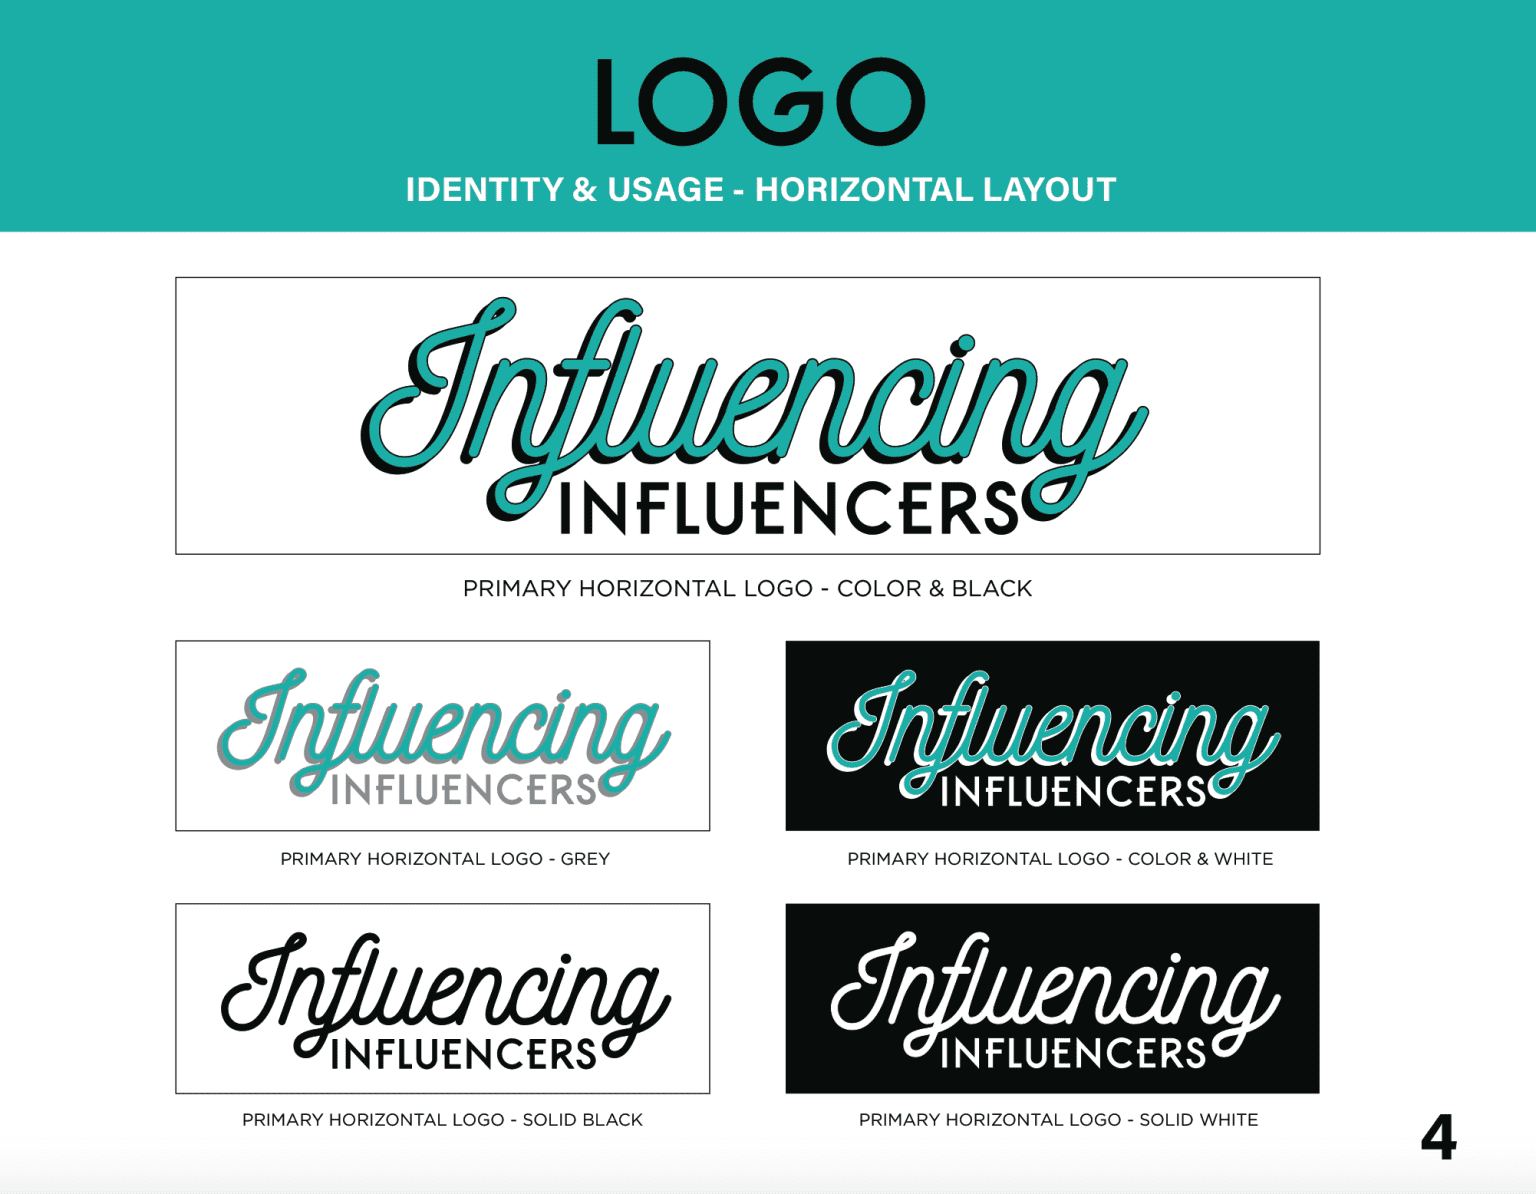 Influencing Influencers Podcast Branding Guidelines